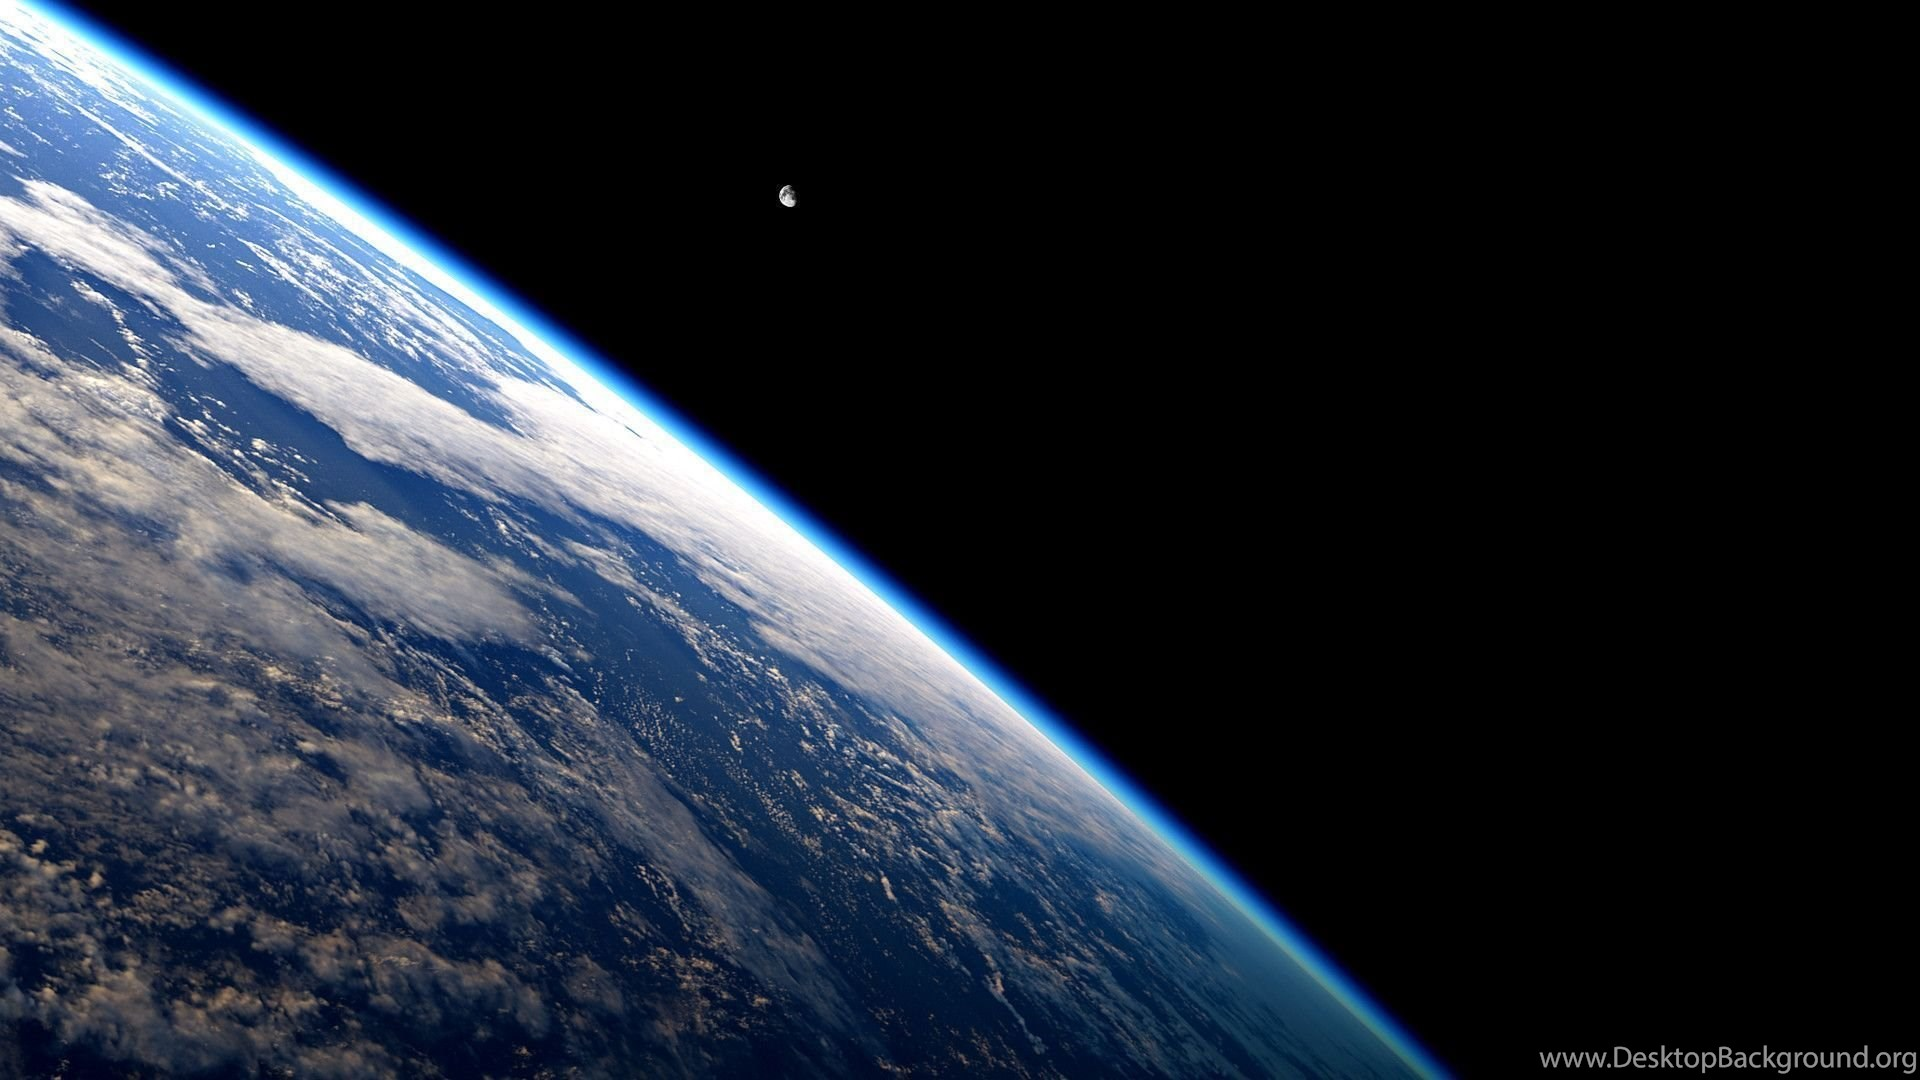 Earth Space Hd Wallpapers 1920x1080 Pics About Space Desktop